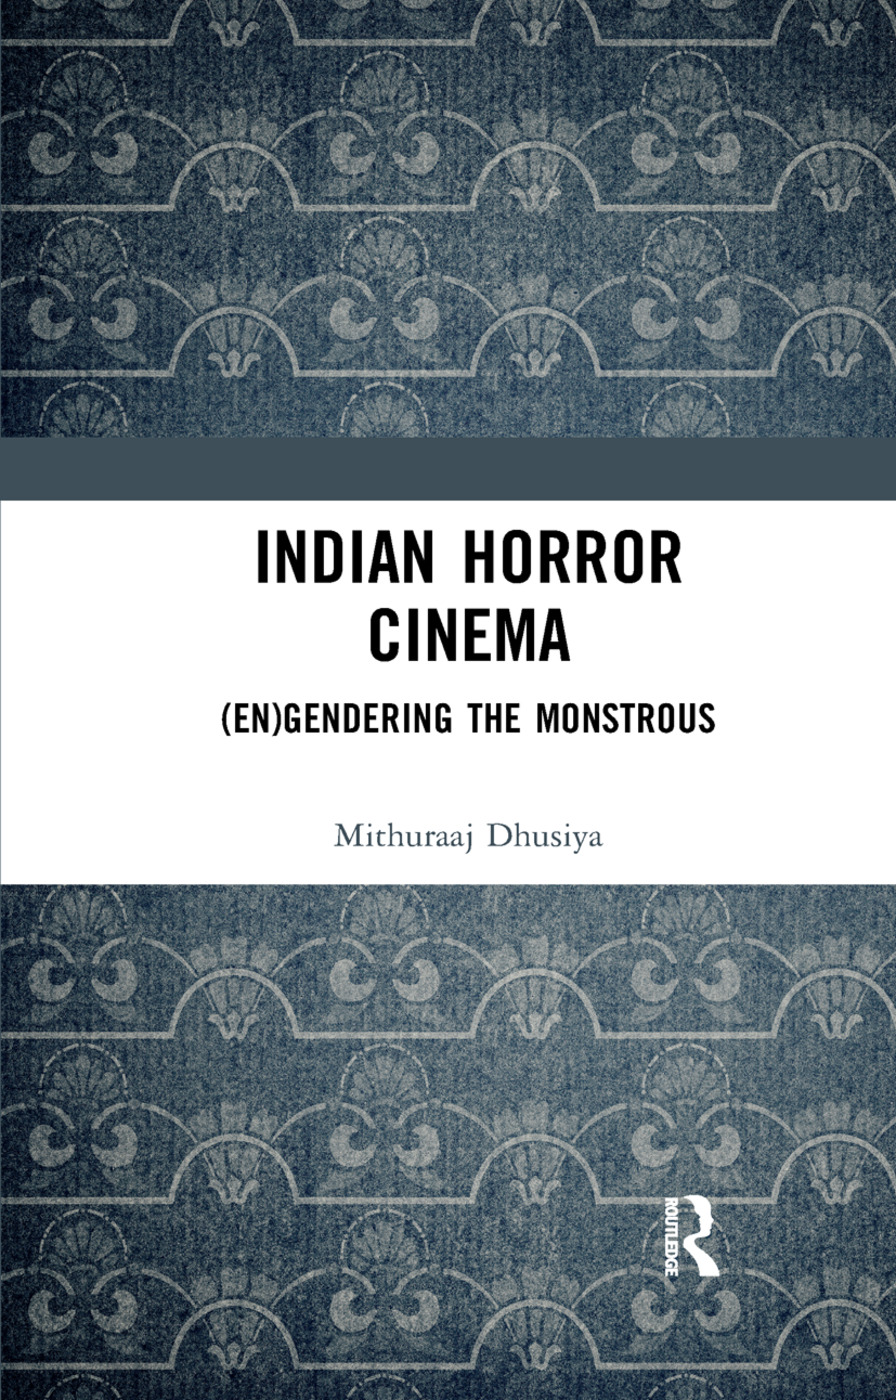 Indian Horror Cinema: (En)gendering the Monstrous book cover